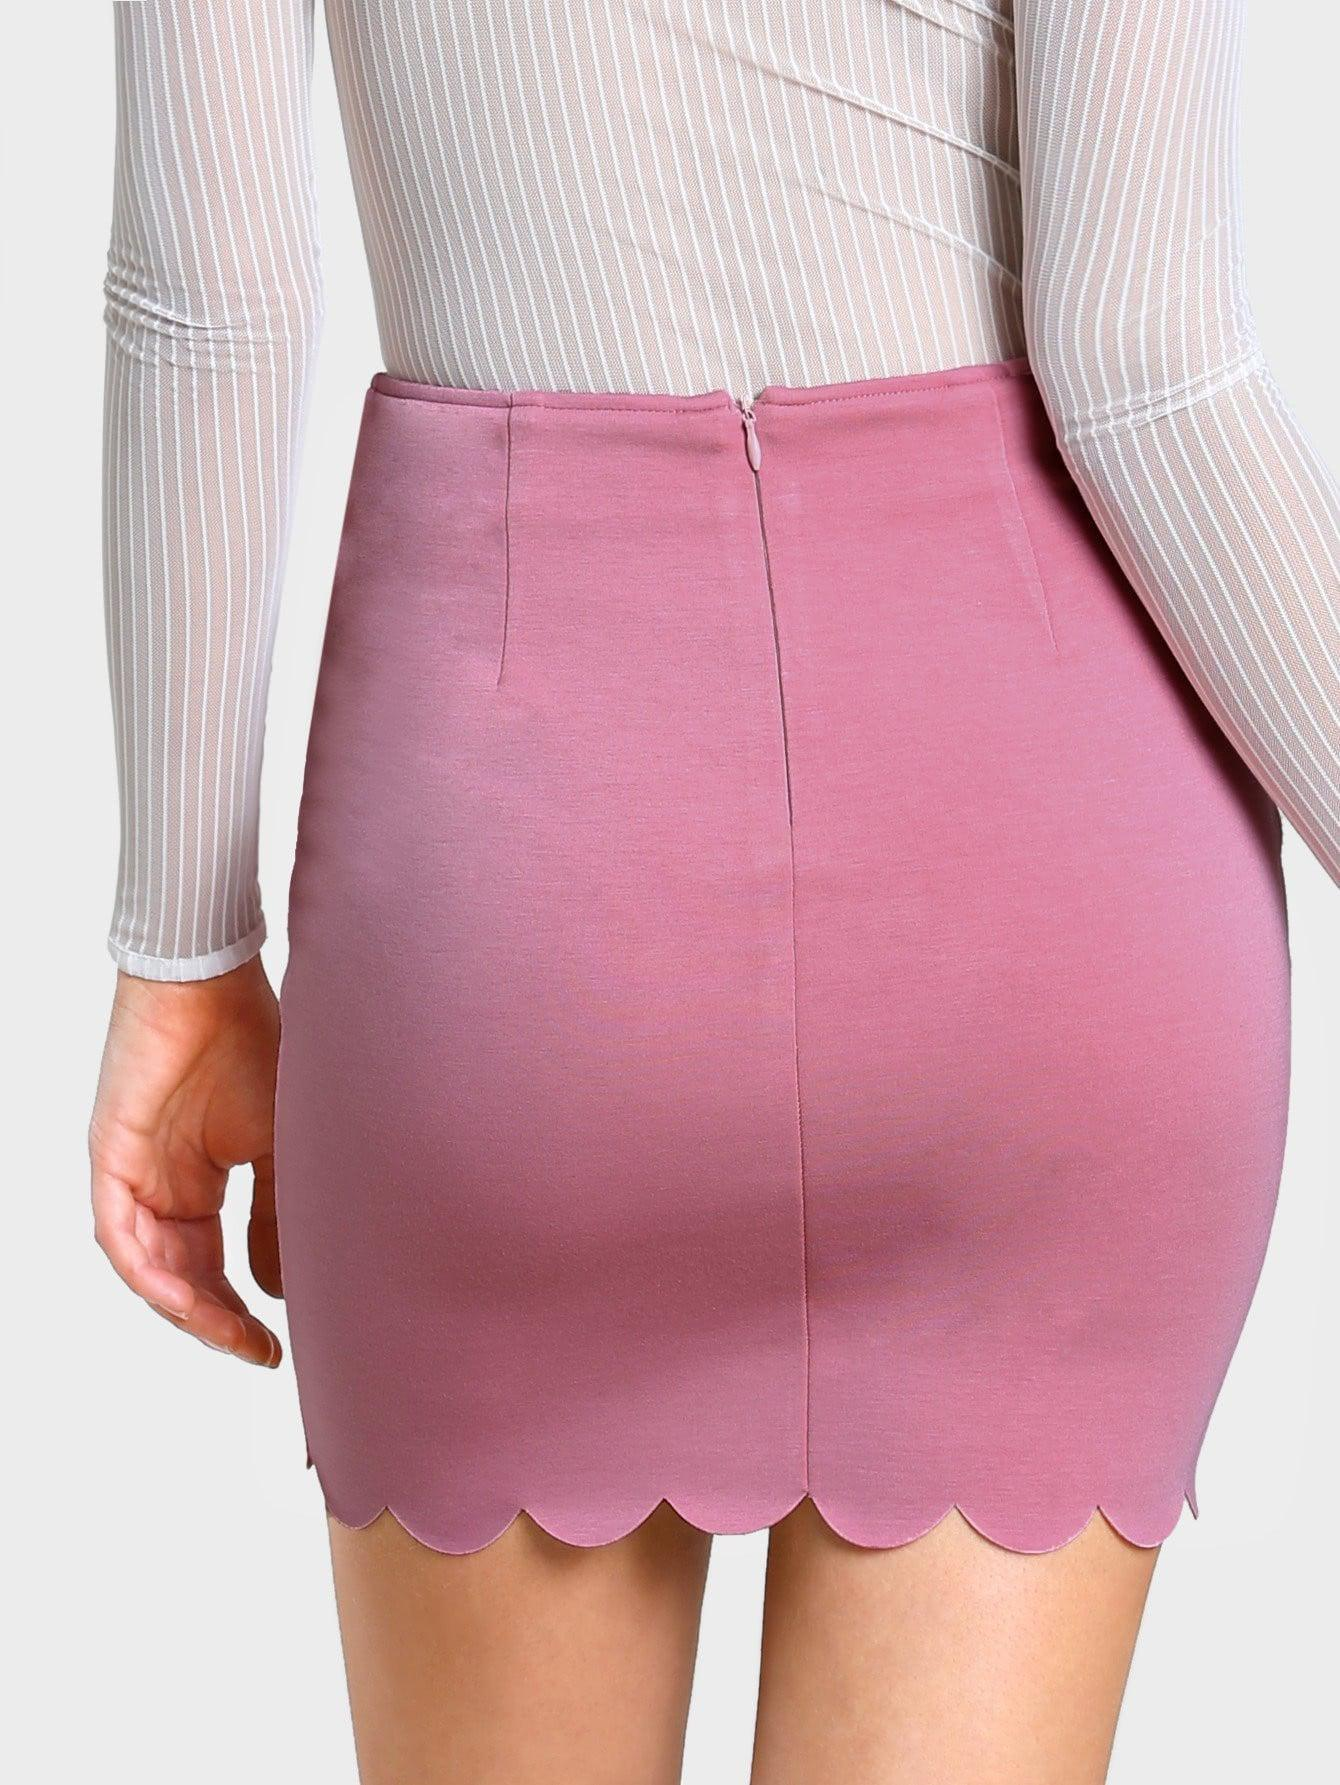 Scallop Edge Form Fitting Skirt - zooomberg